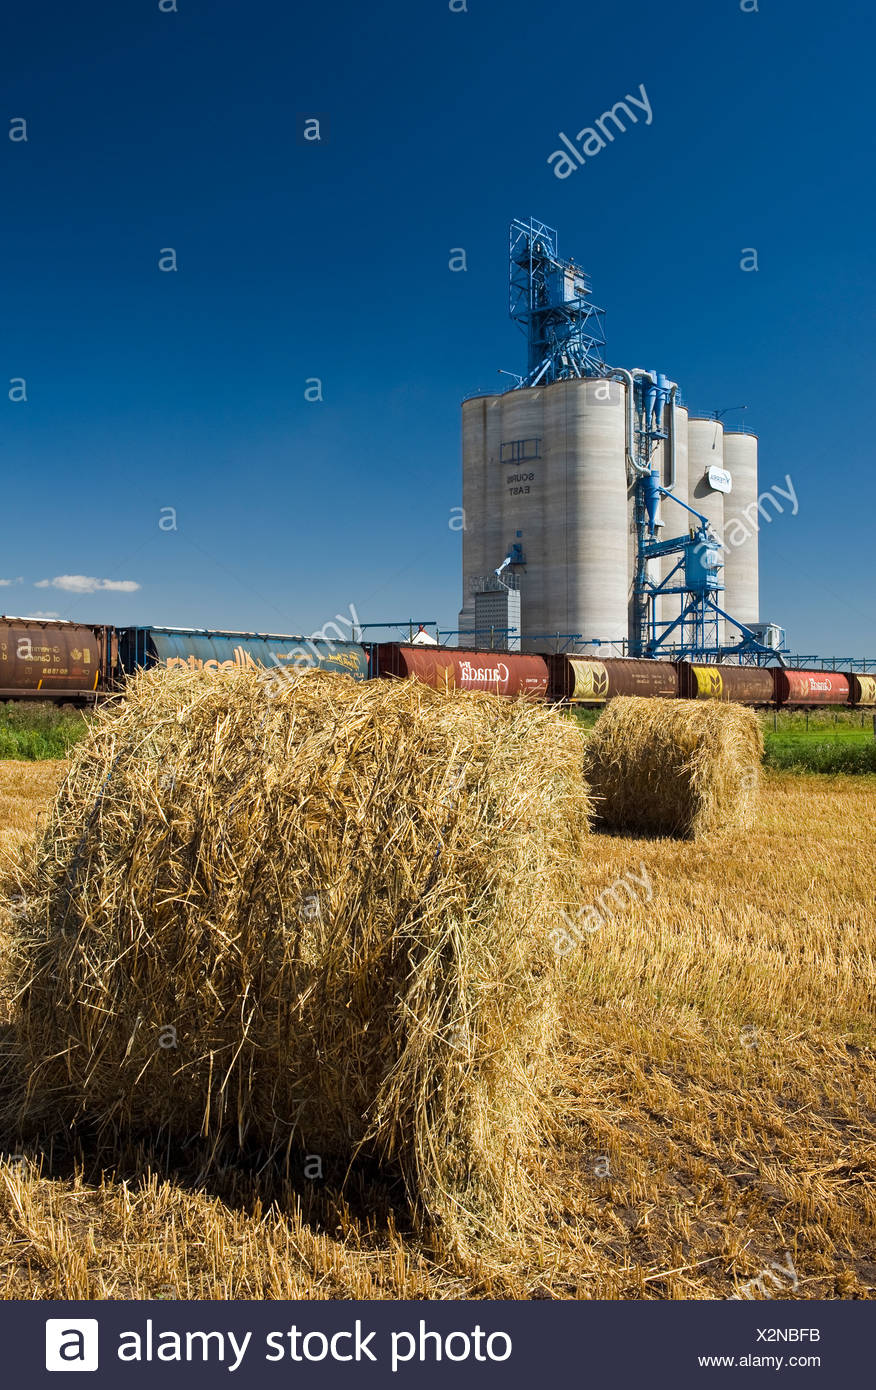 Inland grain terminal and oat rolls near Souris, Manitoba, Canada - Stock Image